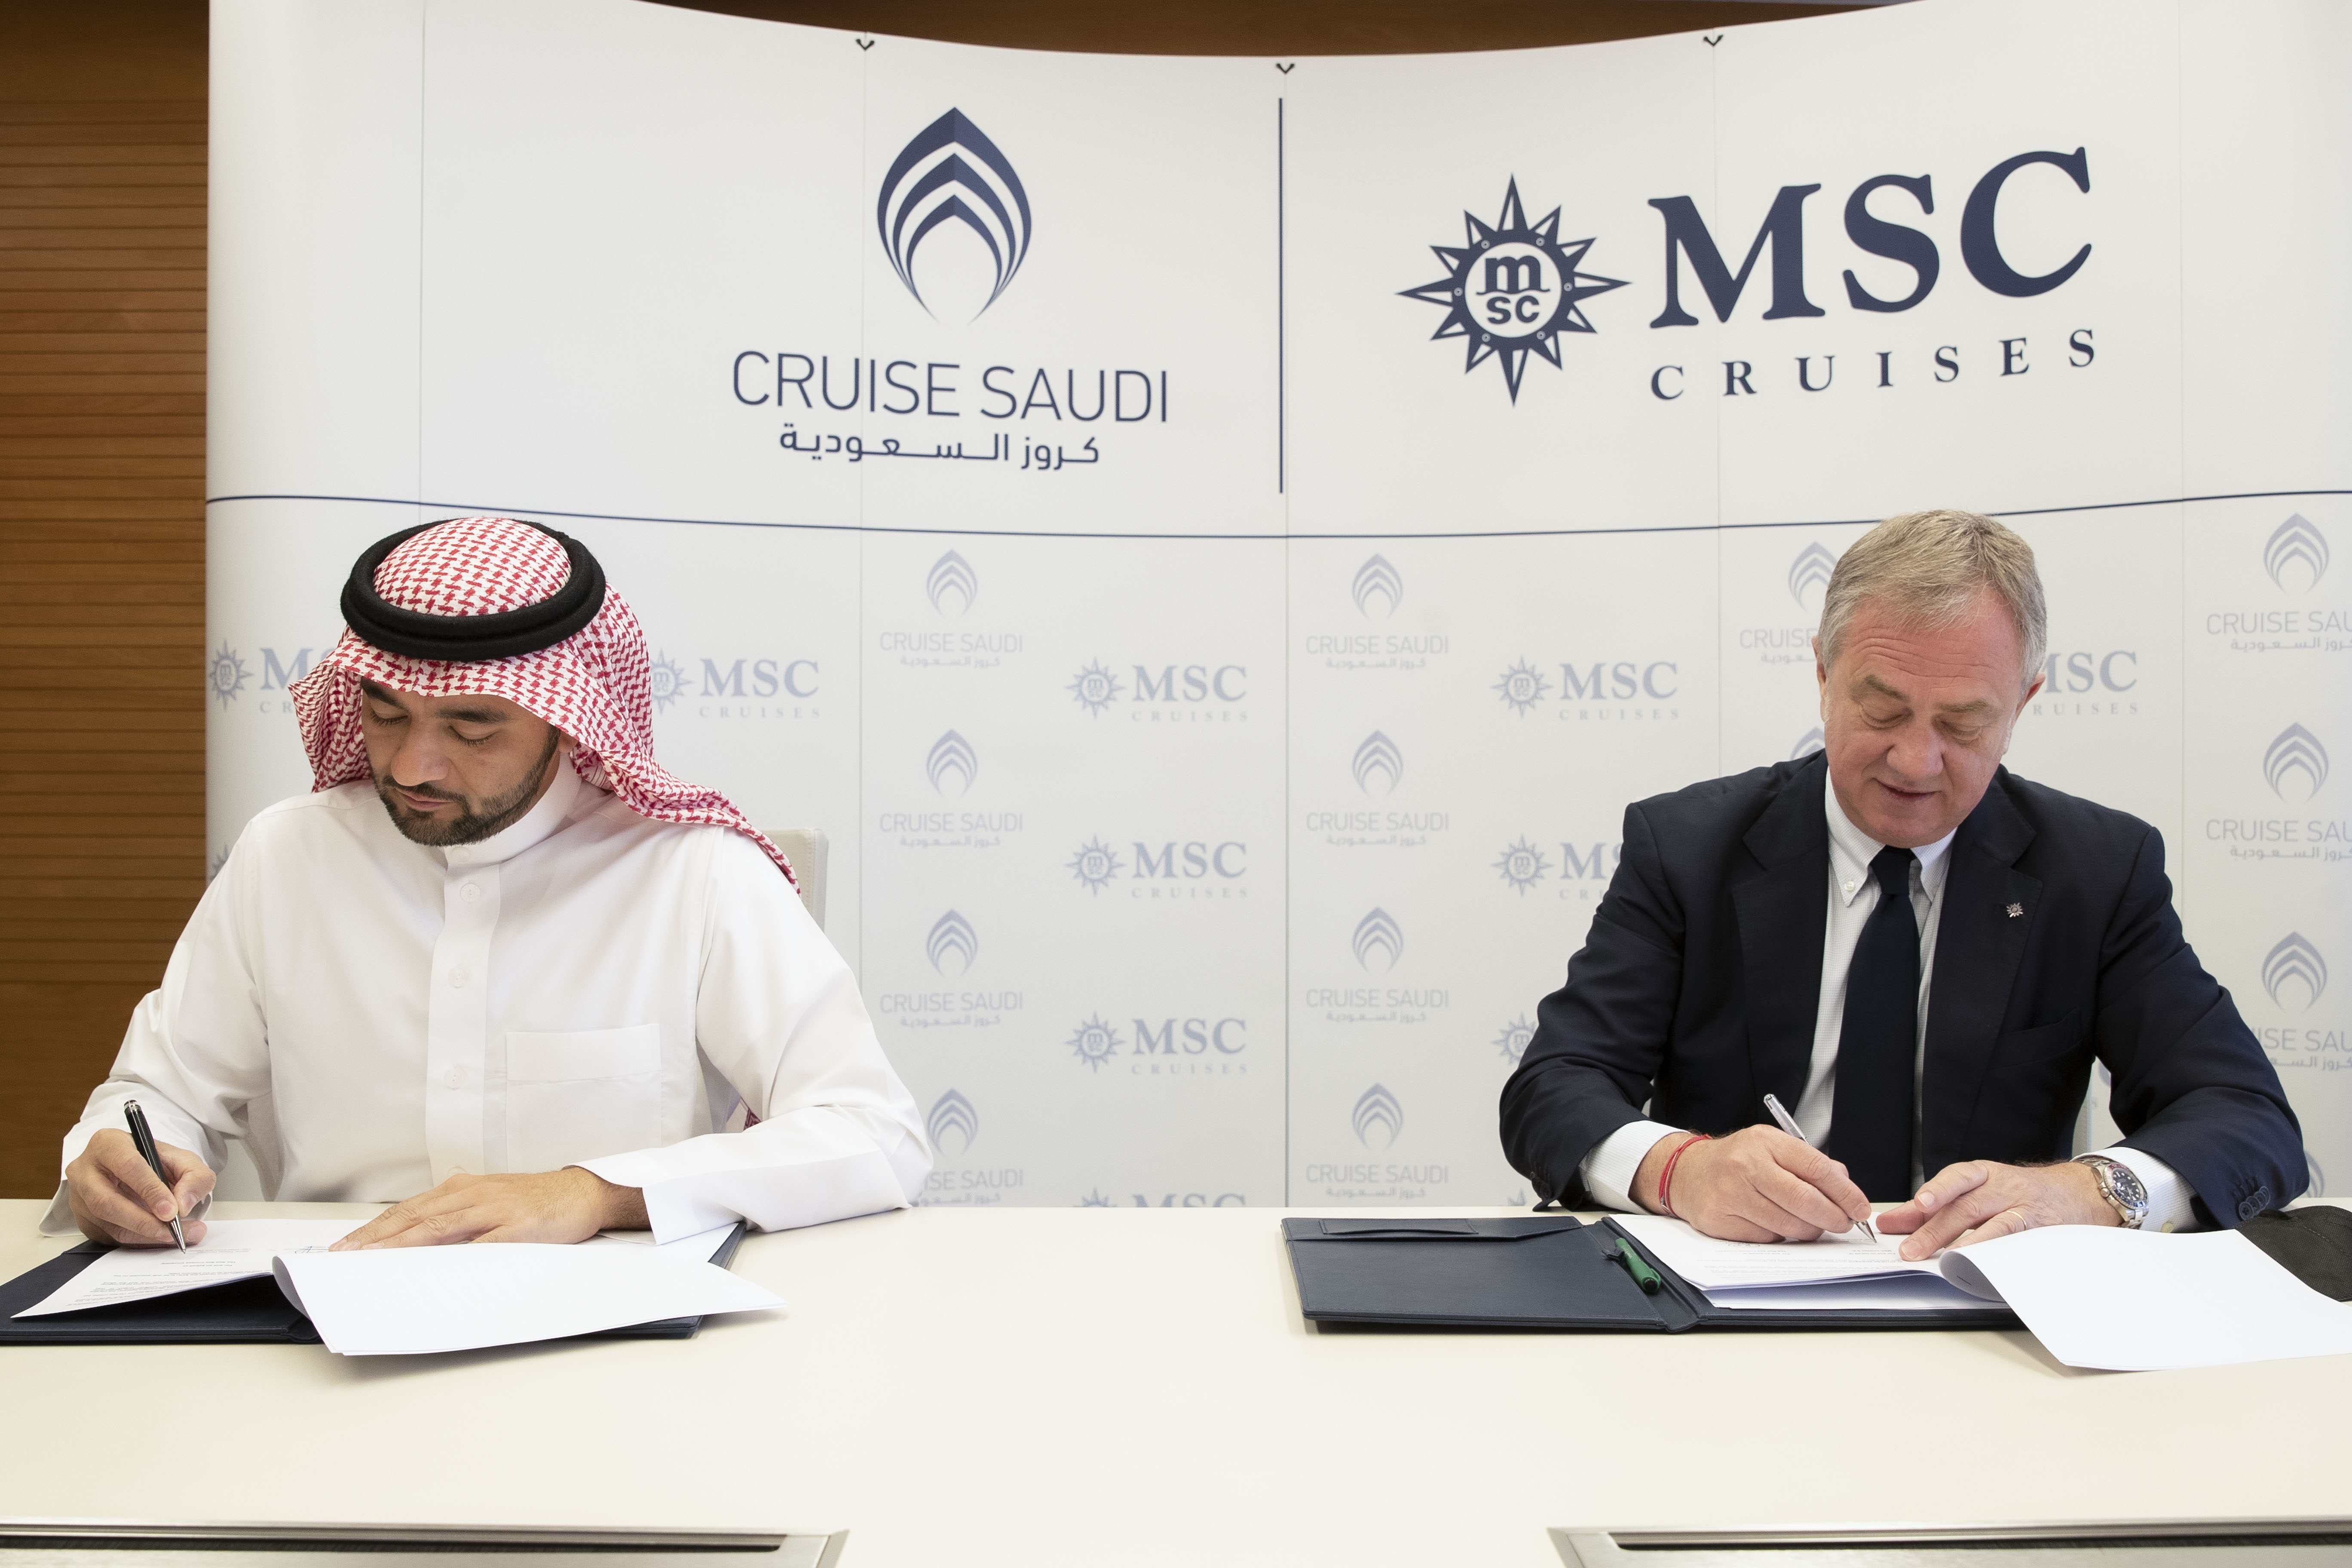 Fawaz Farooqui, Managing Director of Cruise Saudi (left) & Pierfrancesco Vago, Executive Chairman of MSC Cruises, sign the agreement in Riyadh. (MSC)